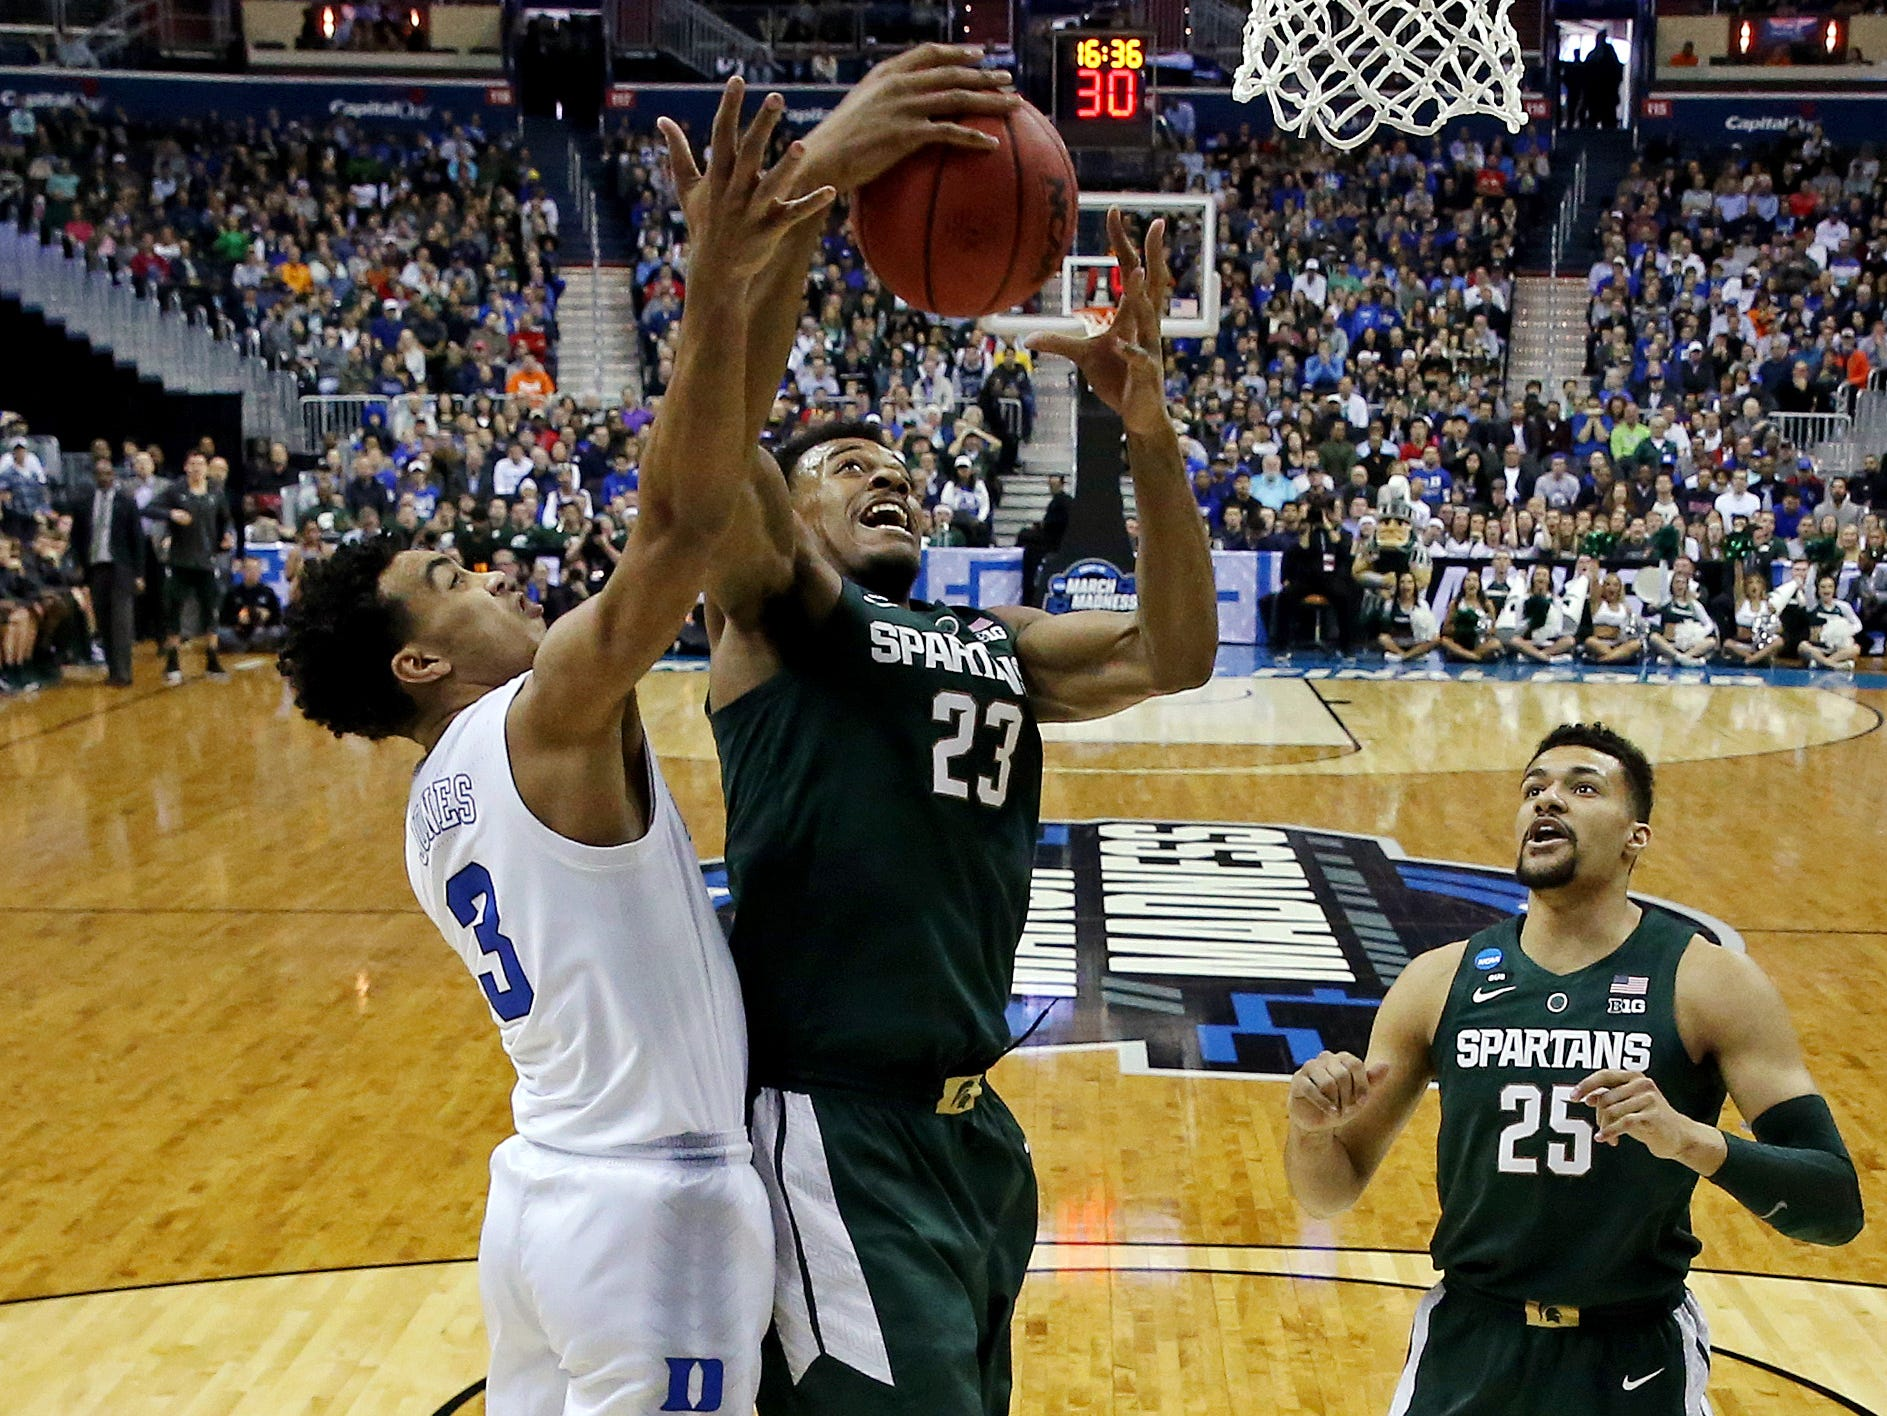 Mar 31, 2019; Washington, DC, USA; Michigan State Spartans forward Xavier Tillman (23) grabs a rebound against Duke Blue Devils guard Tre Jones (3) during the first half in the championship game of the east regional of the 2019 NCAA Tournament at Capital One Arena. Mandatory Credit: Geoff Burke-USA TODAY Sports